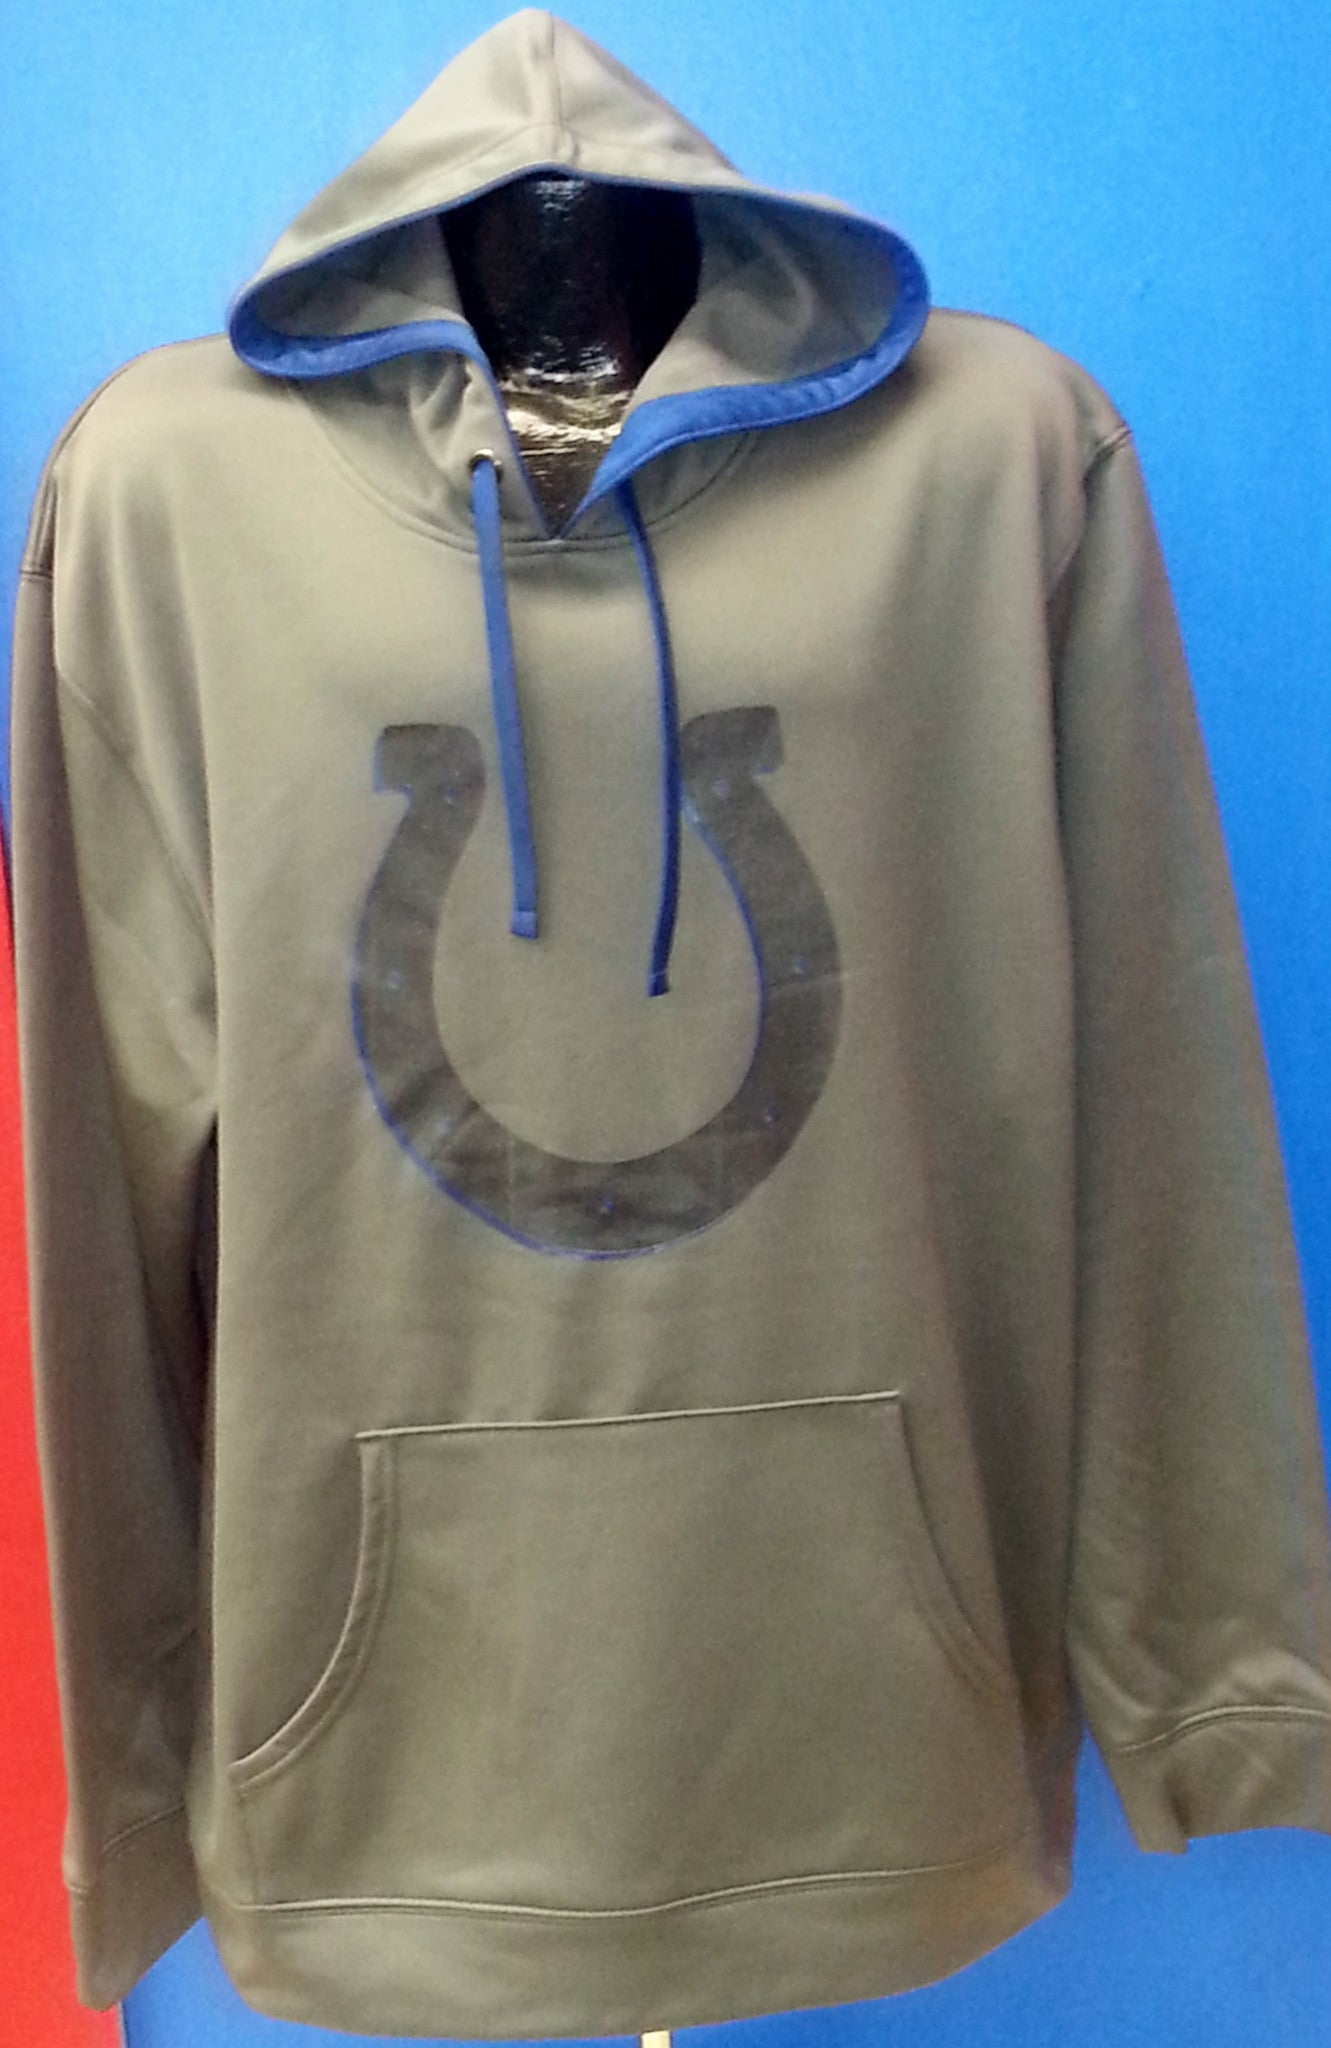 85826f72f Indianapolis Colts Full Performance Dri-Fit Hooded Pullover Sweatshirt-Charcoal  - Dynasty Sports